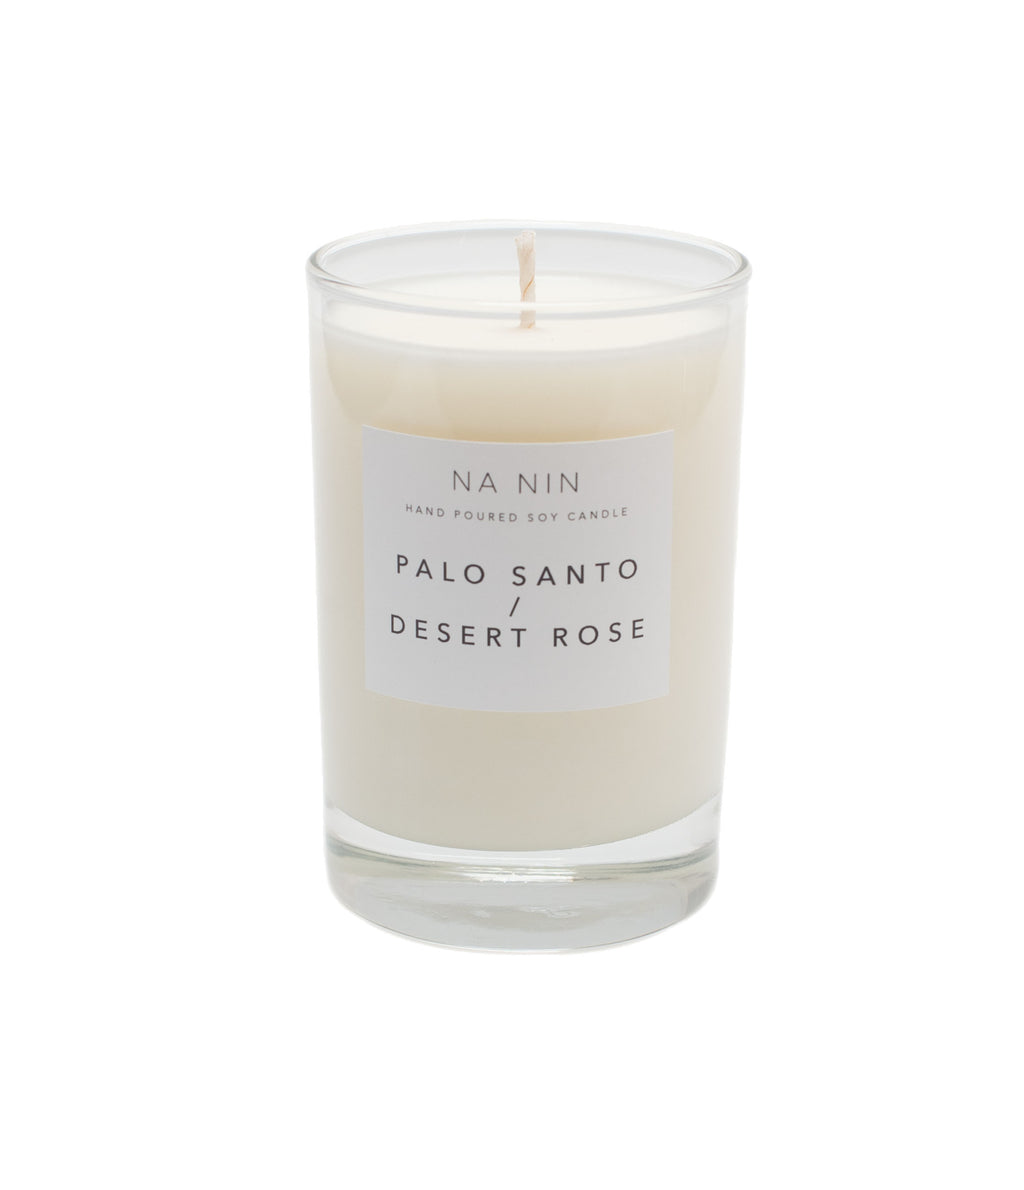 Palo Santo + Desert Rose 5oz Hand Poured Soy Candle by Na-Nin